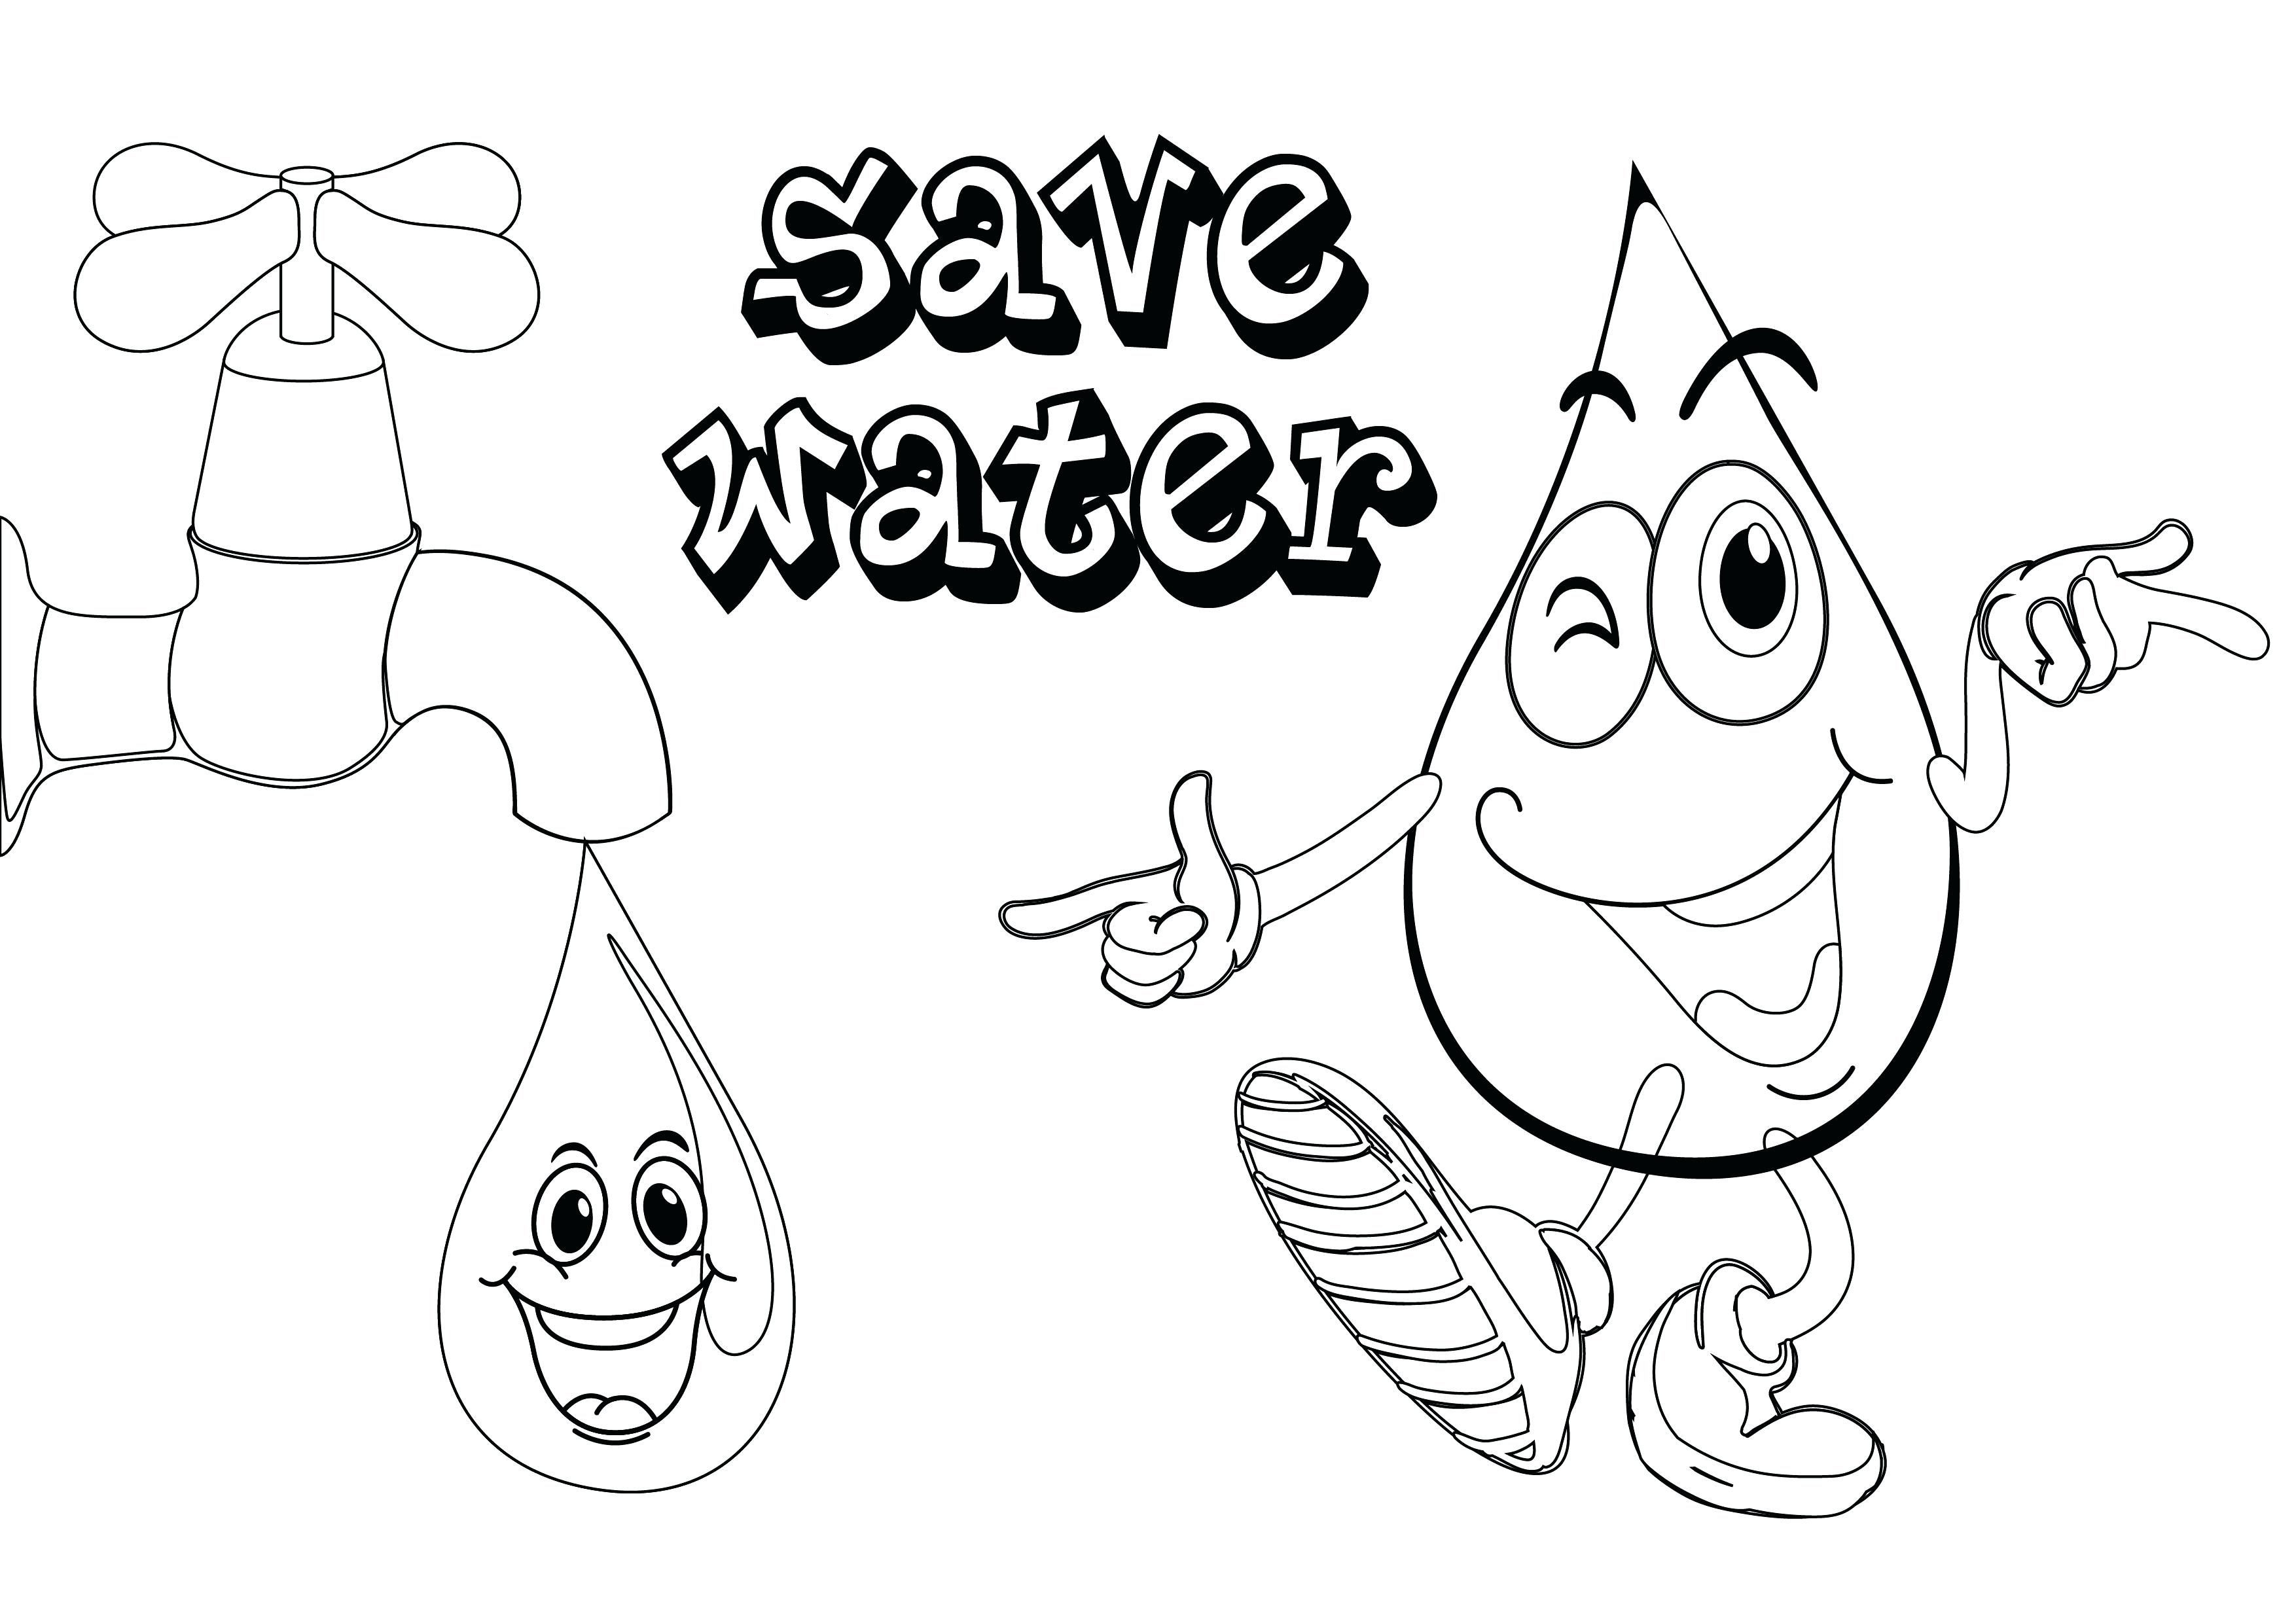 Water Cycle Coloring Page Unique Save Water Coloring Pages Dubaitransport